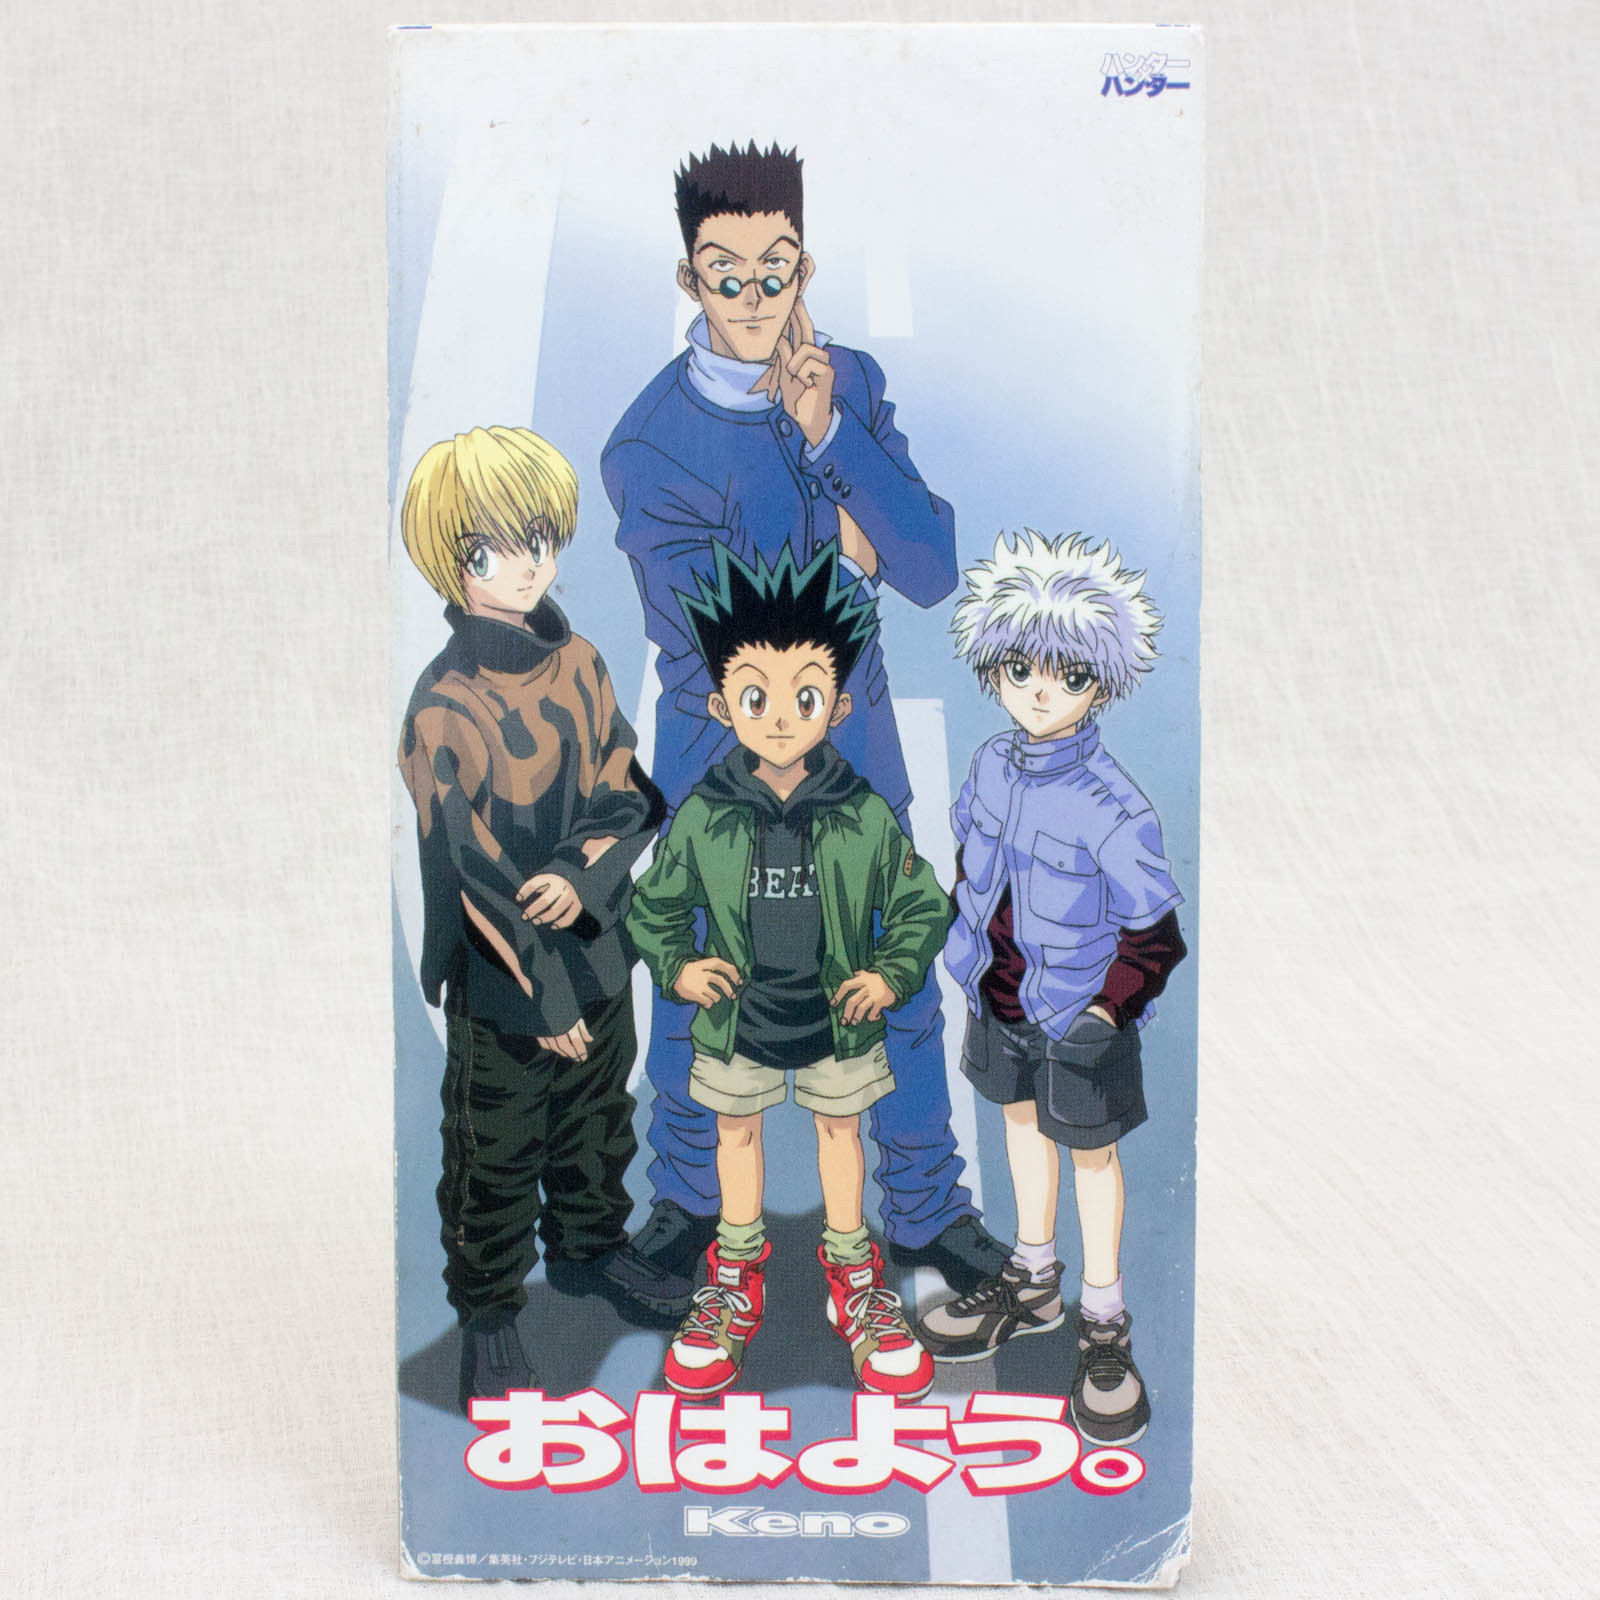 HUNTER x HUNTER Ohayo/Keno 3 Inch (8cm) Single JAPAN ANIME CD